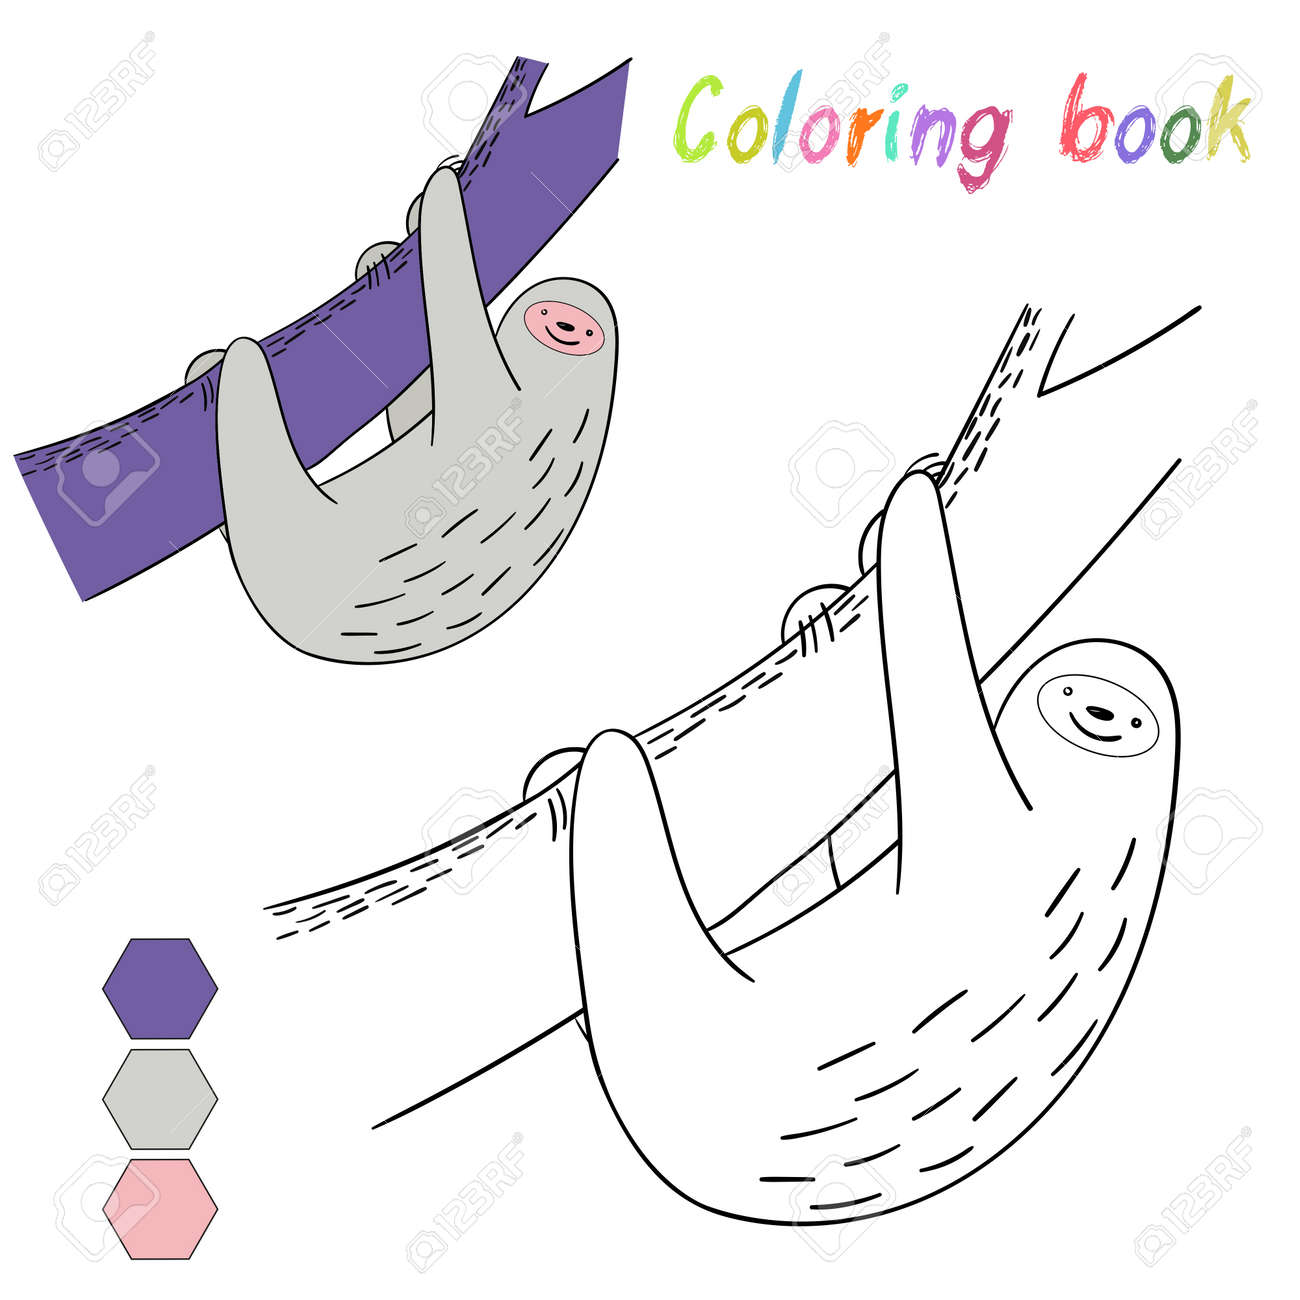 Coloring Book Sloth Kids Layout For Game Doodle Hand Drawn Cartoon Vector Illustration Stock